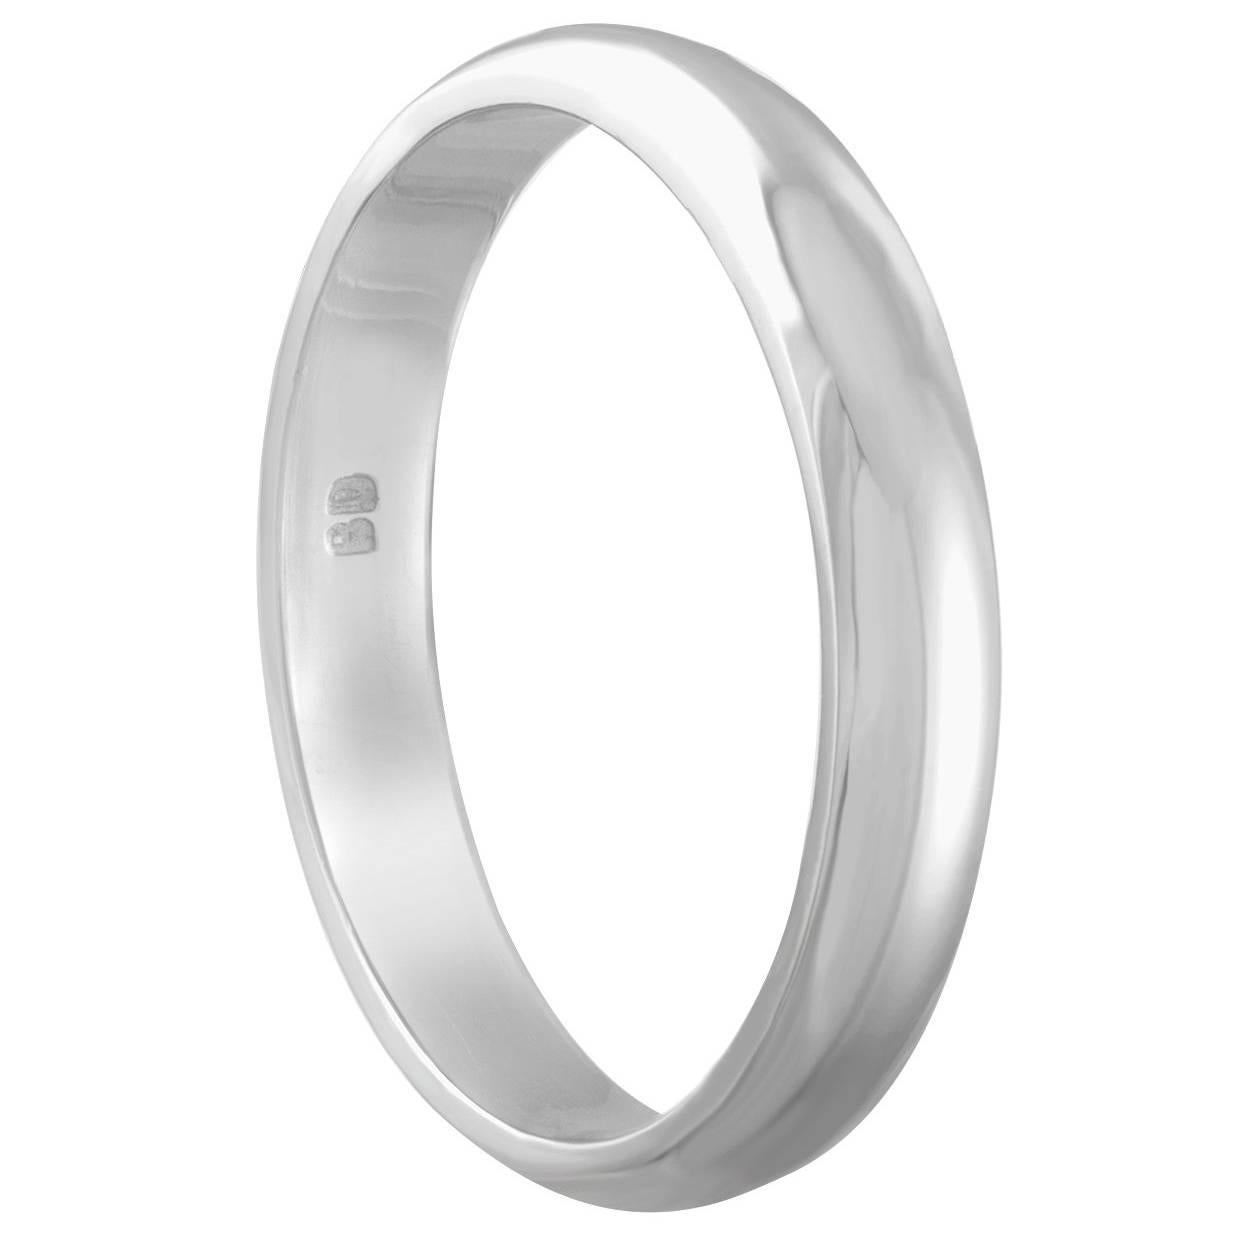 White Gold Wedding Band Ring Size 6.25